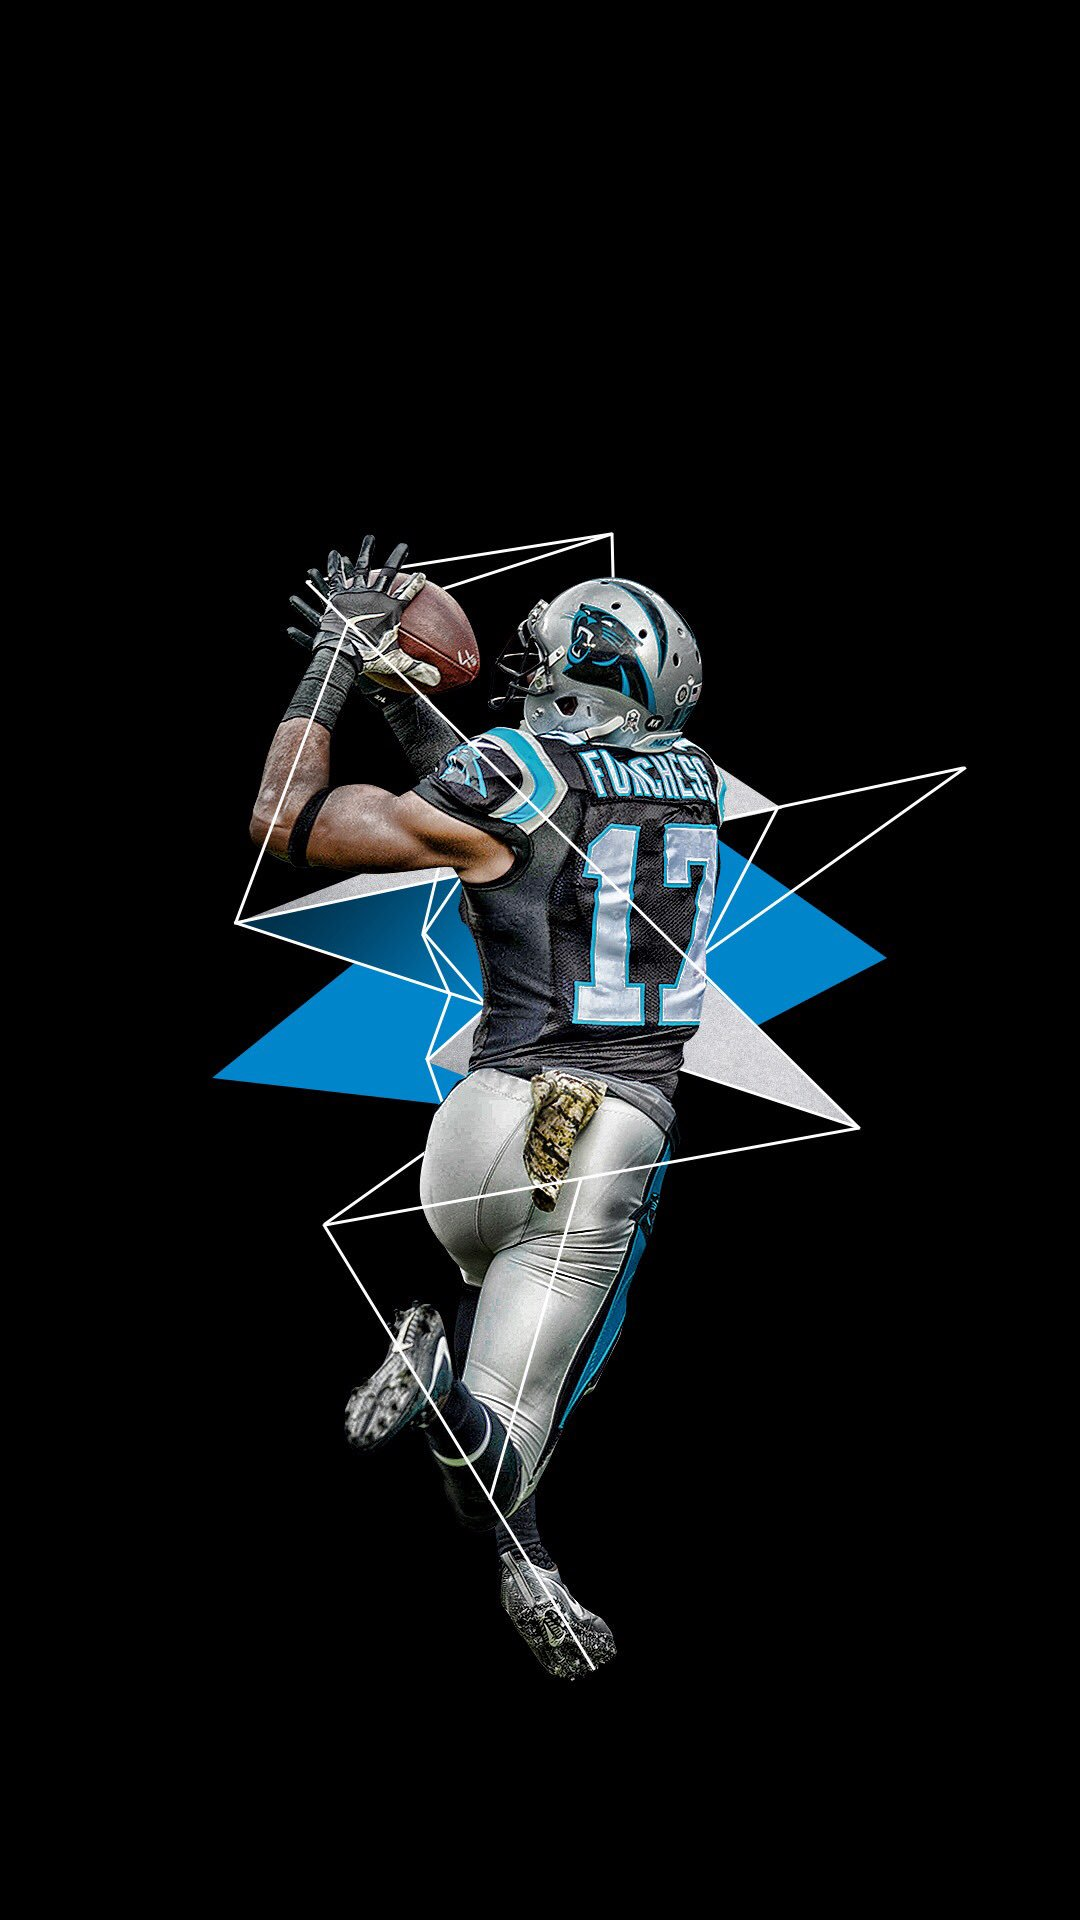 @D_FUNCH should be your new wallpaper �� https://t.co/RaySWY0xWJ